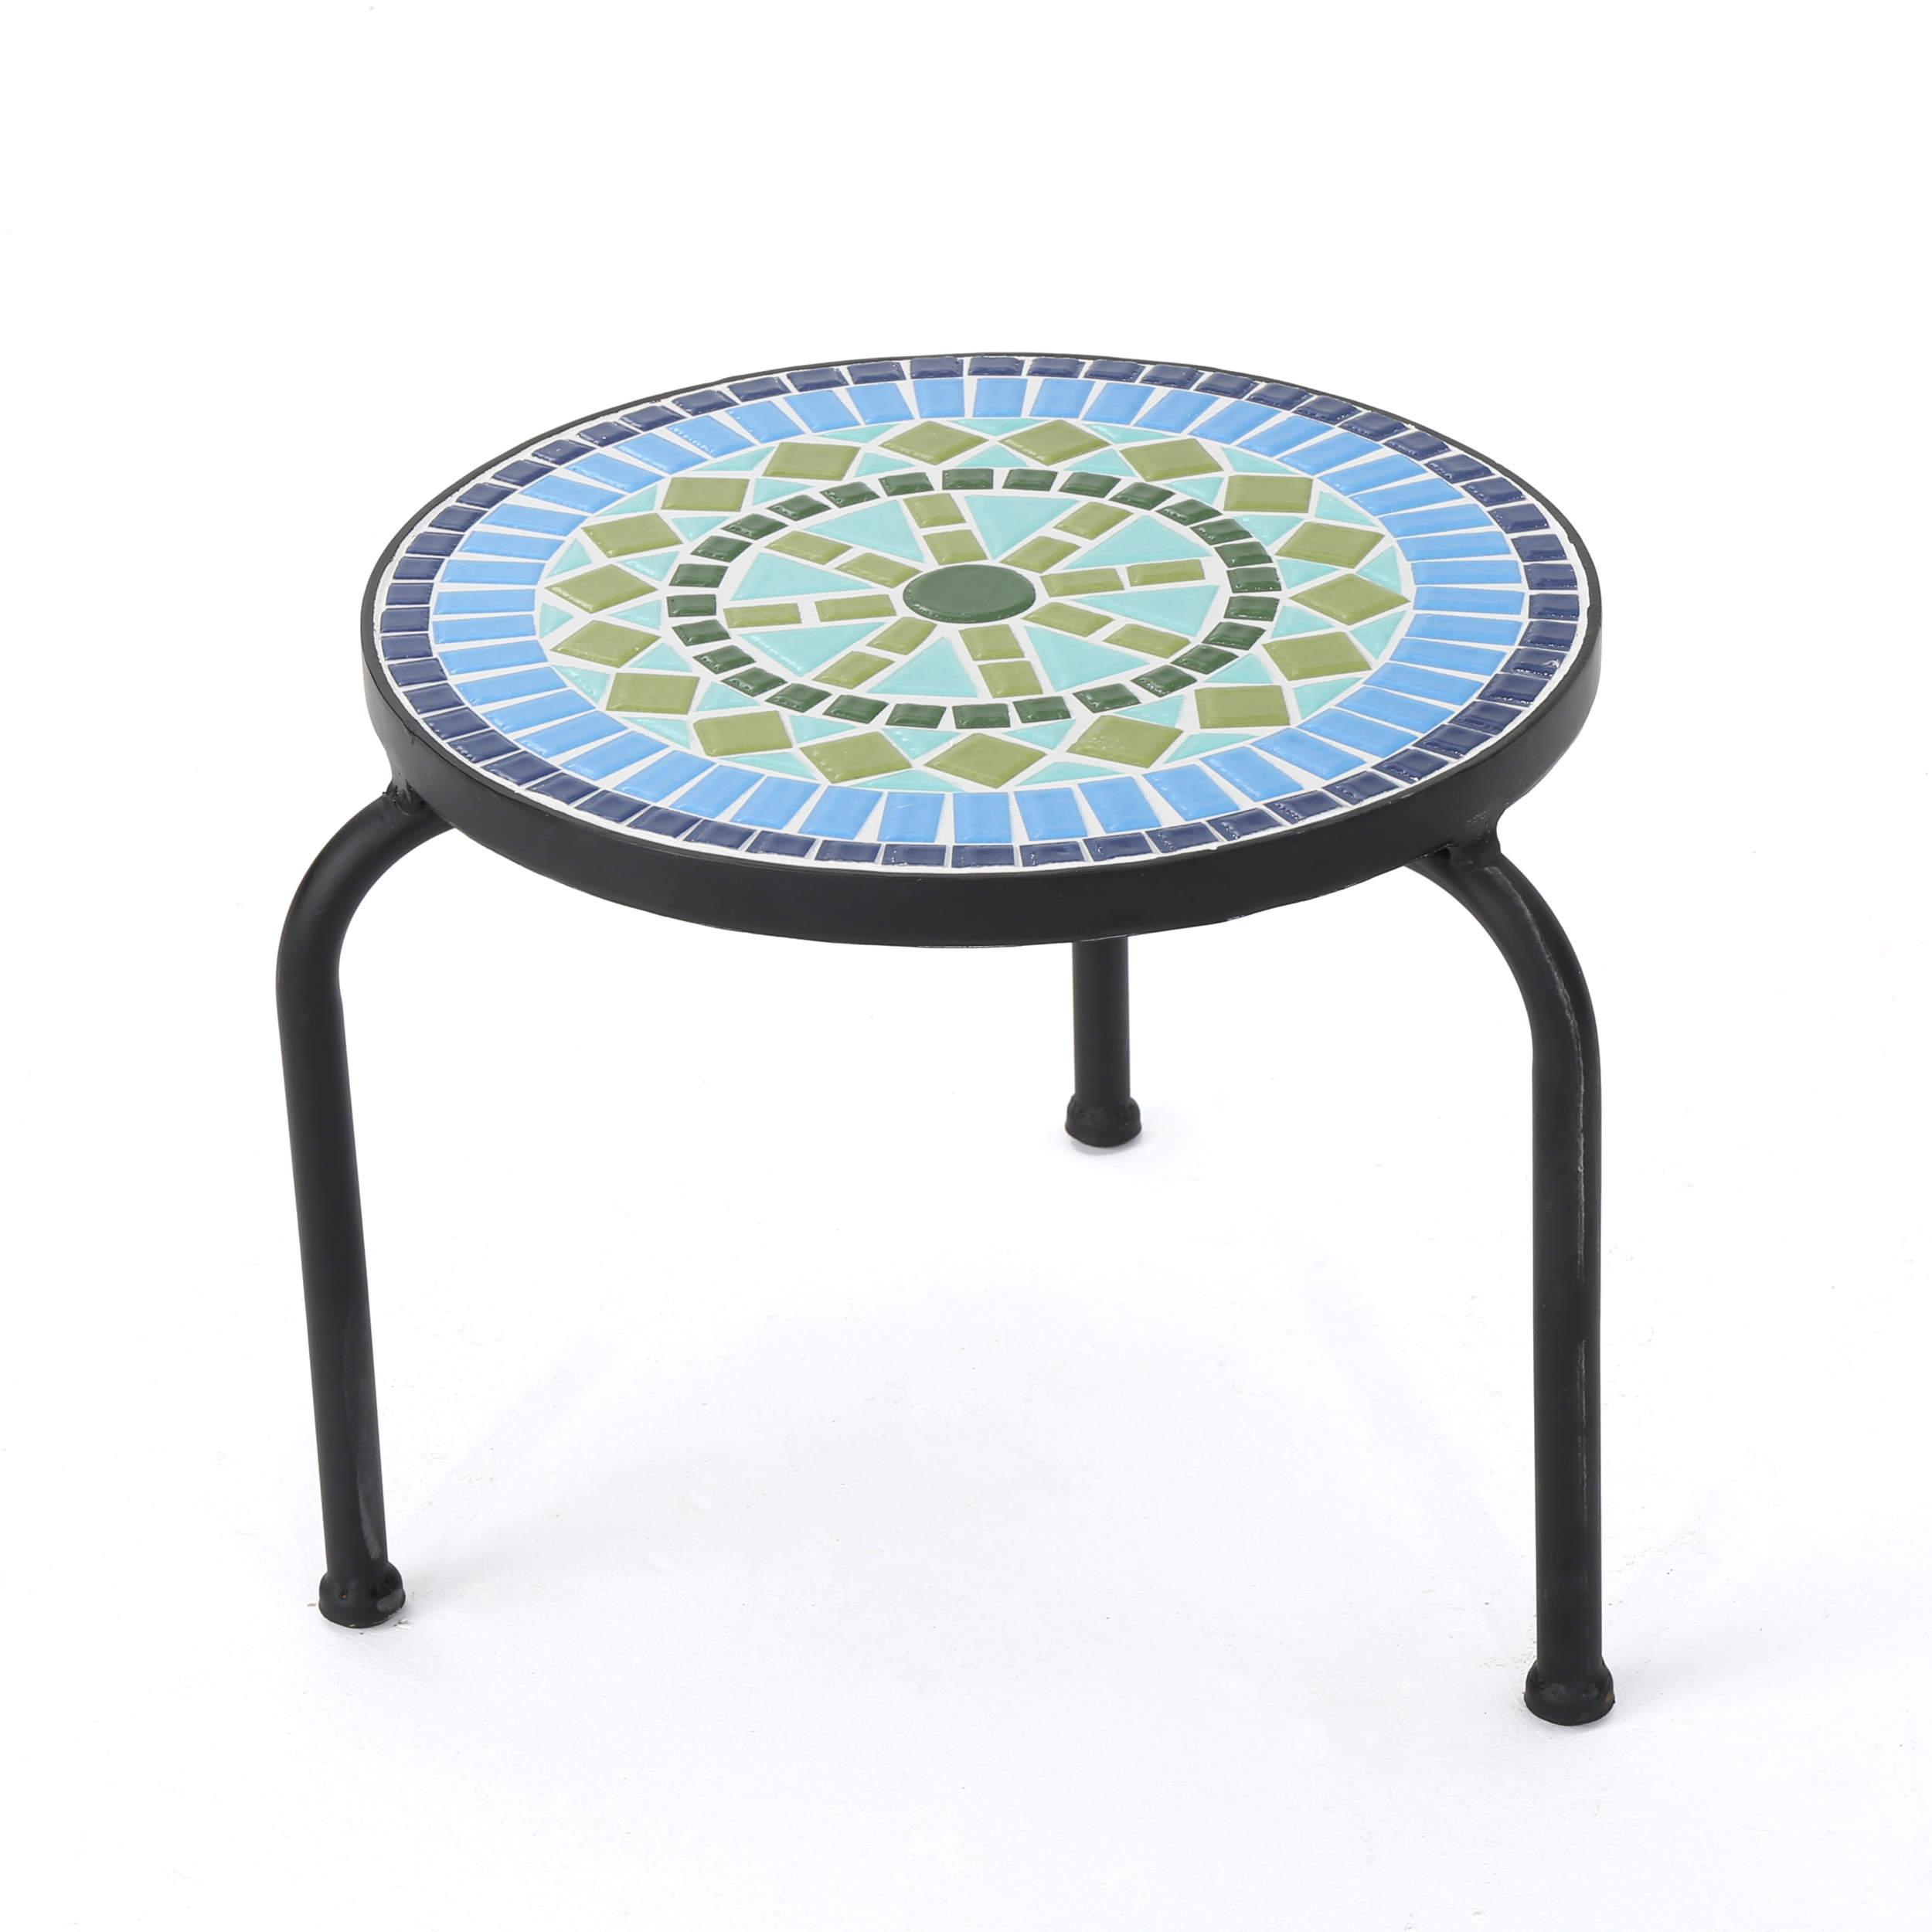 Isildur Outdoor Ceramic Tile Side Table With Iron Frame Blue And